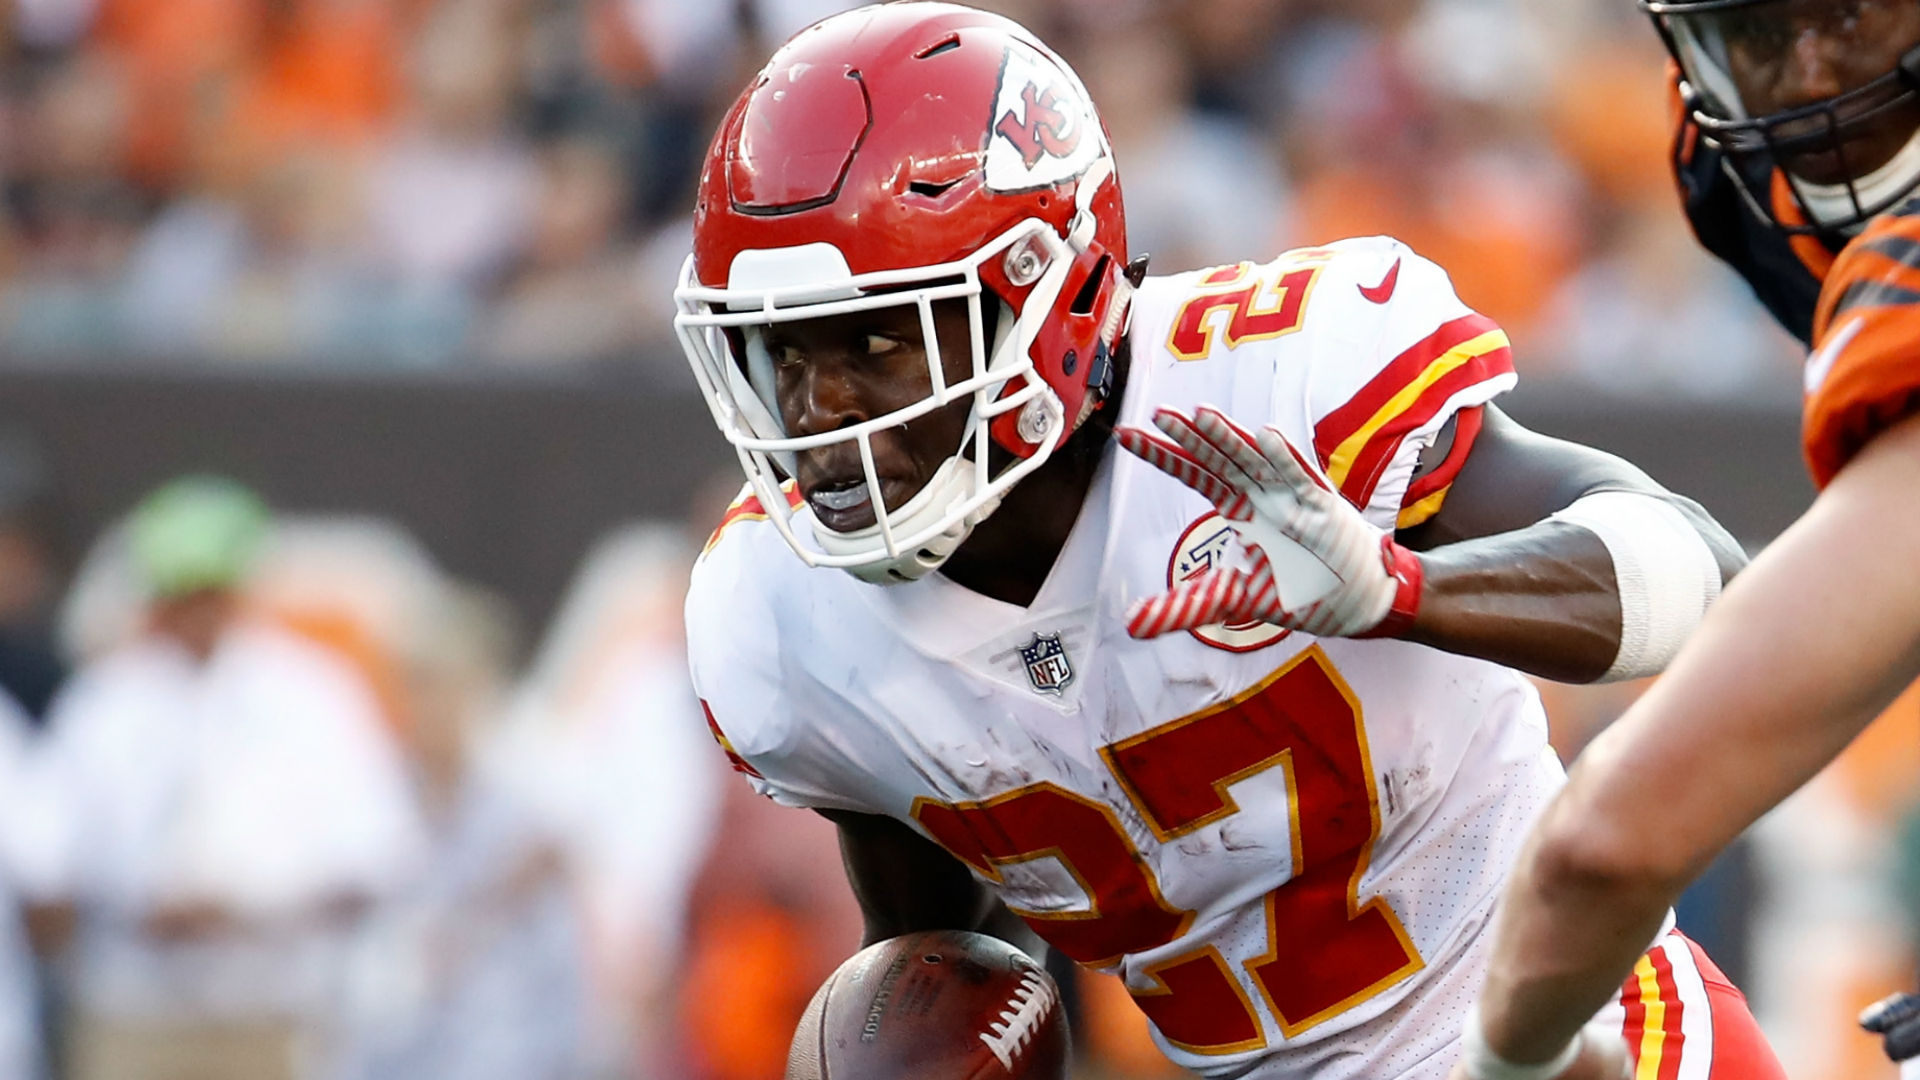 Chiefs RB Spencer Ware carted off with knee injury